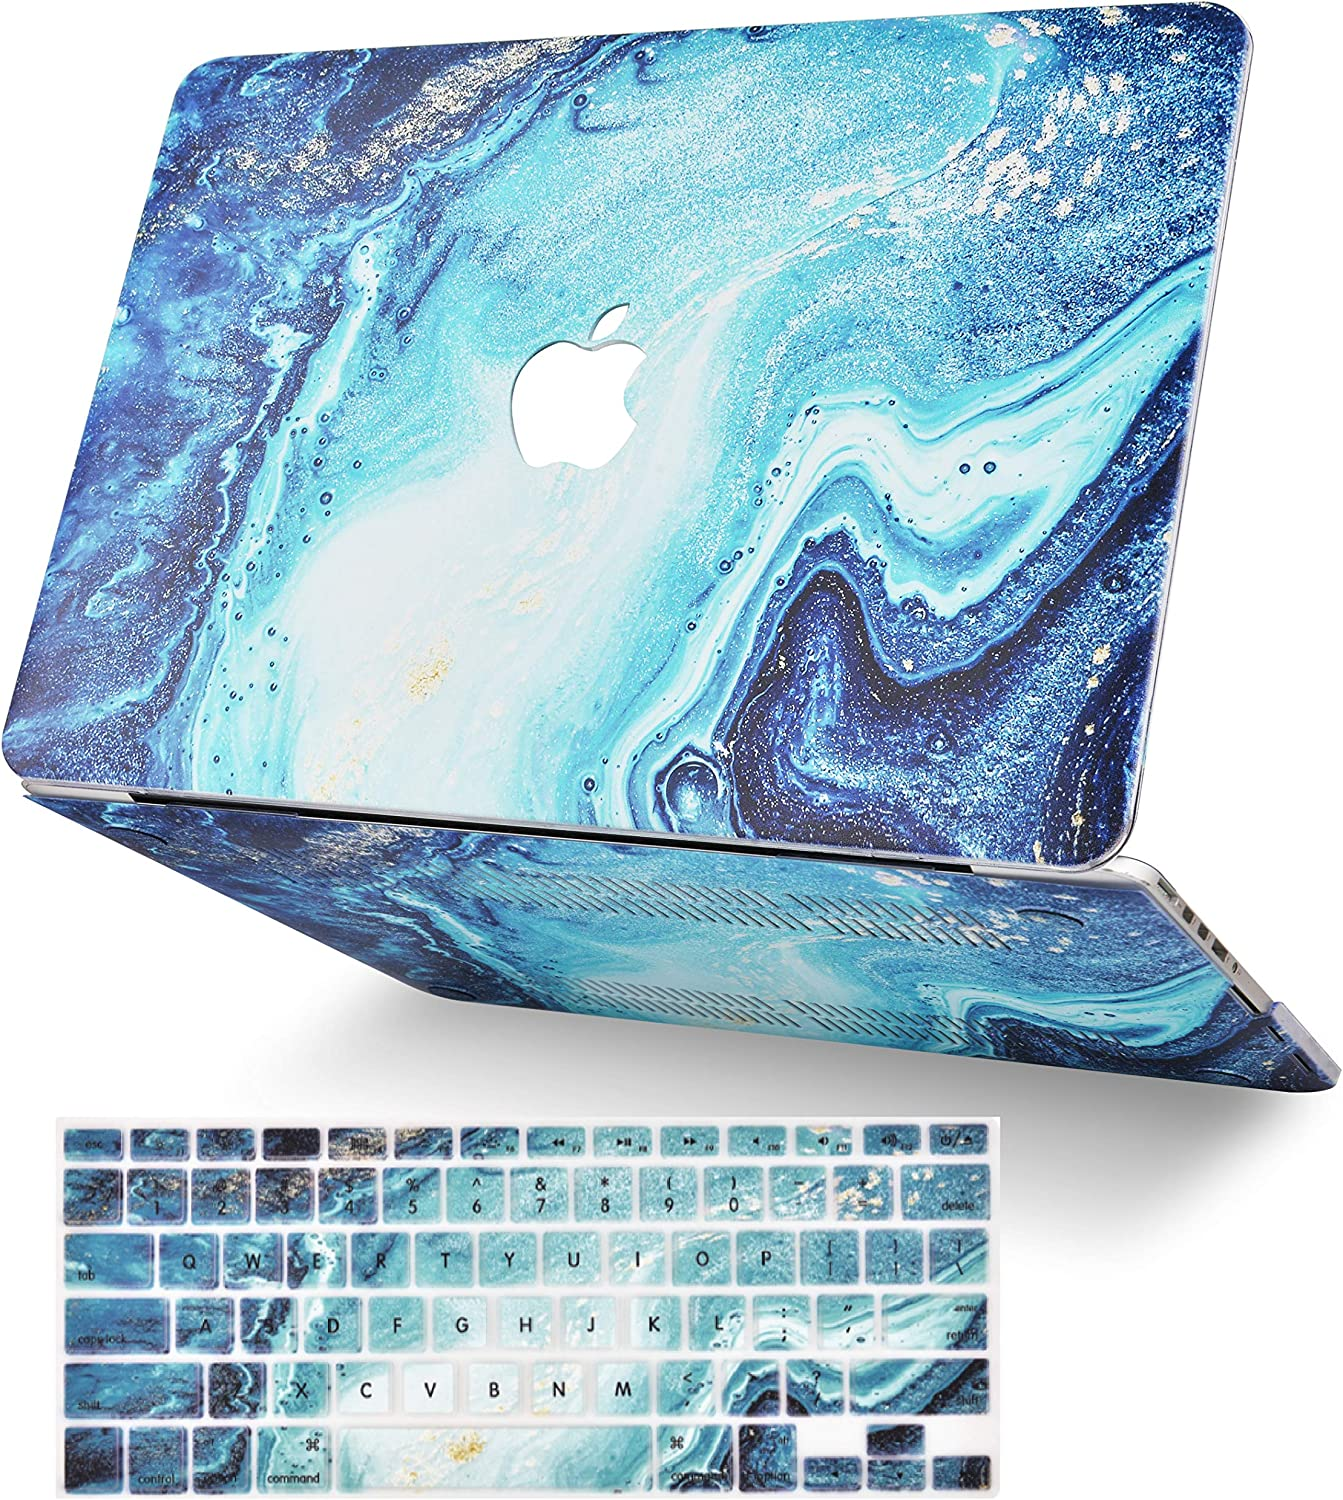 LuvCase 2 in 1 Laptop Case for MacBook Air 13 Inch A1466/A1369 (No Touch ID)(2010-2017) Rubberized Plastic Hard Shell Cover & Keyboard Cover (Ocean Marble)